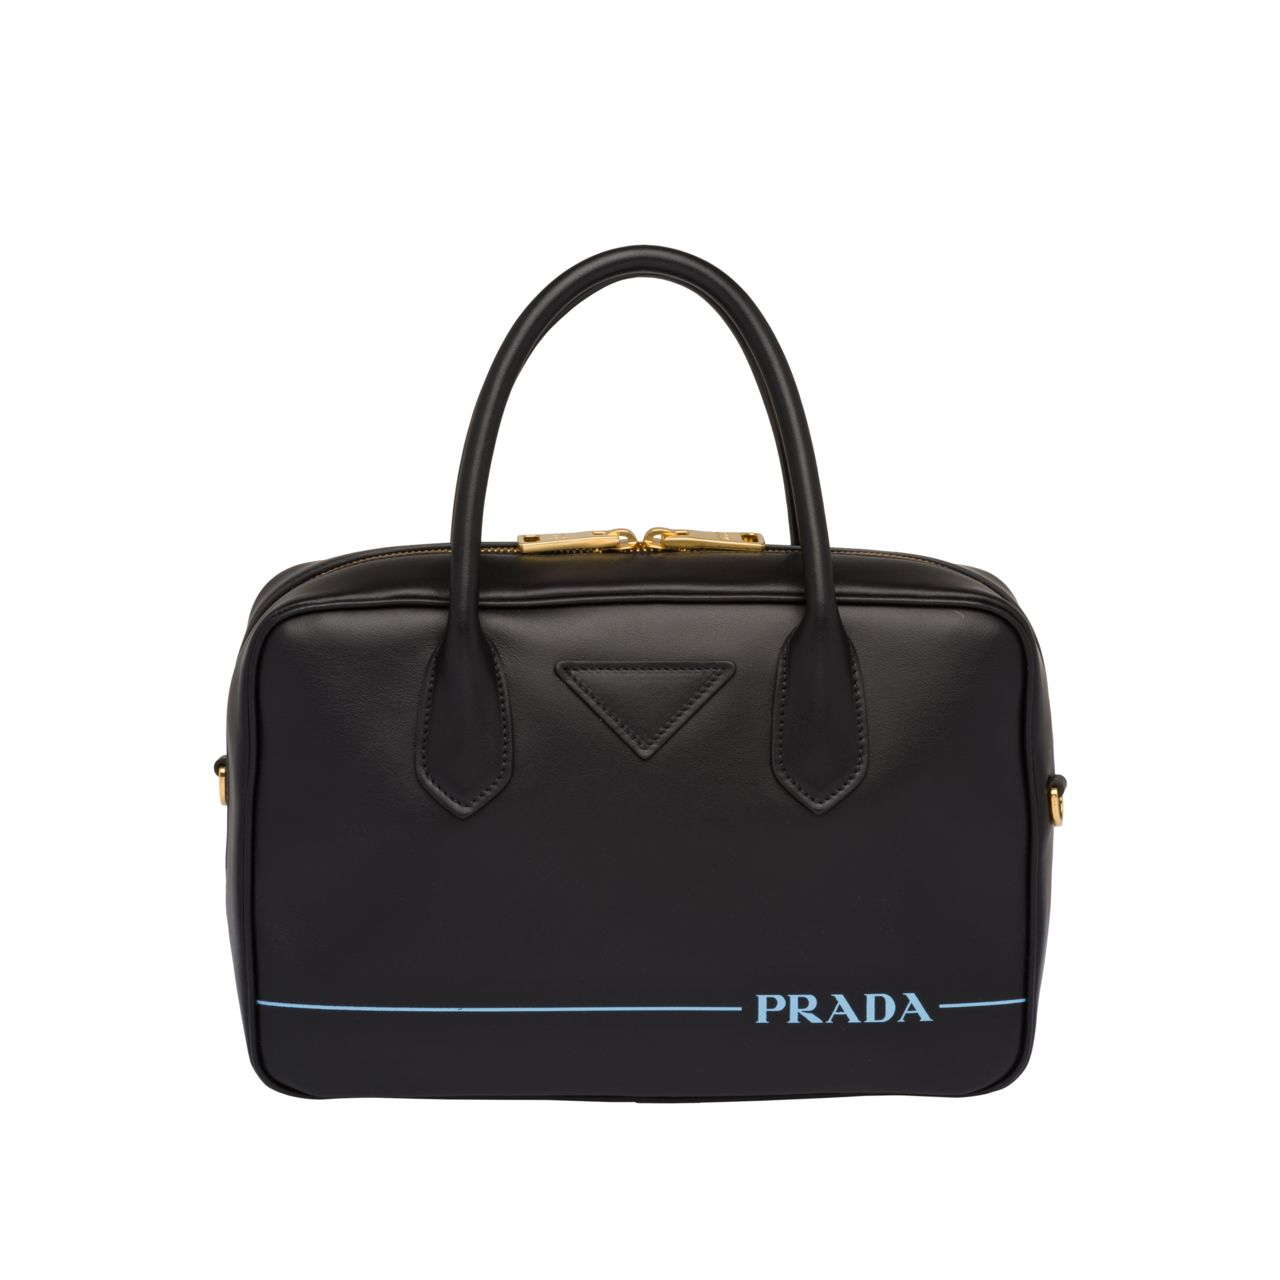 d7249436b6 Prada Fall Winter 2018 Bag Collection Featuring The Mirage Bag ...